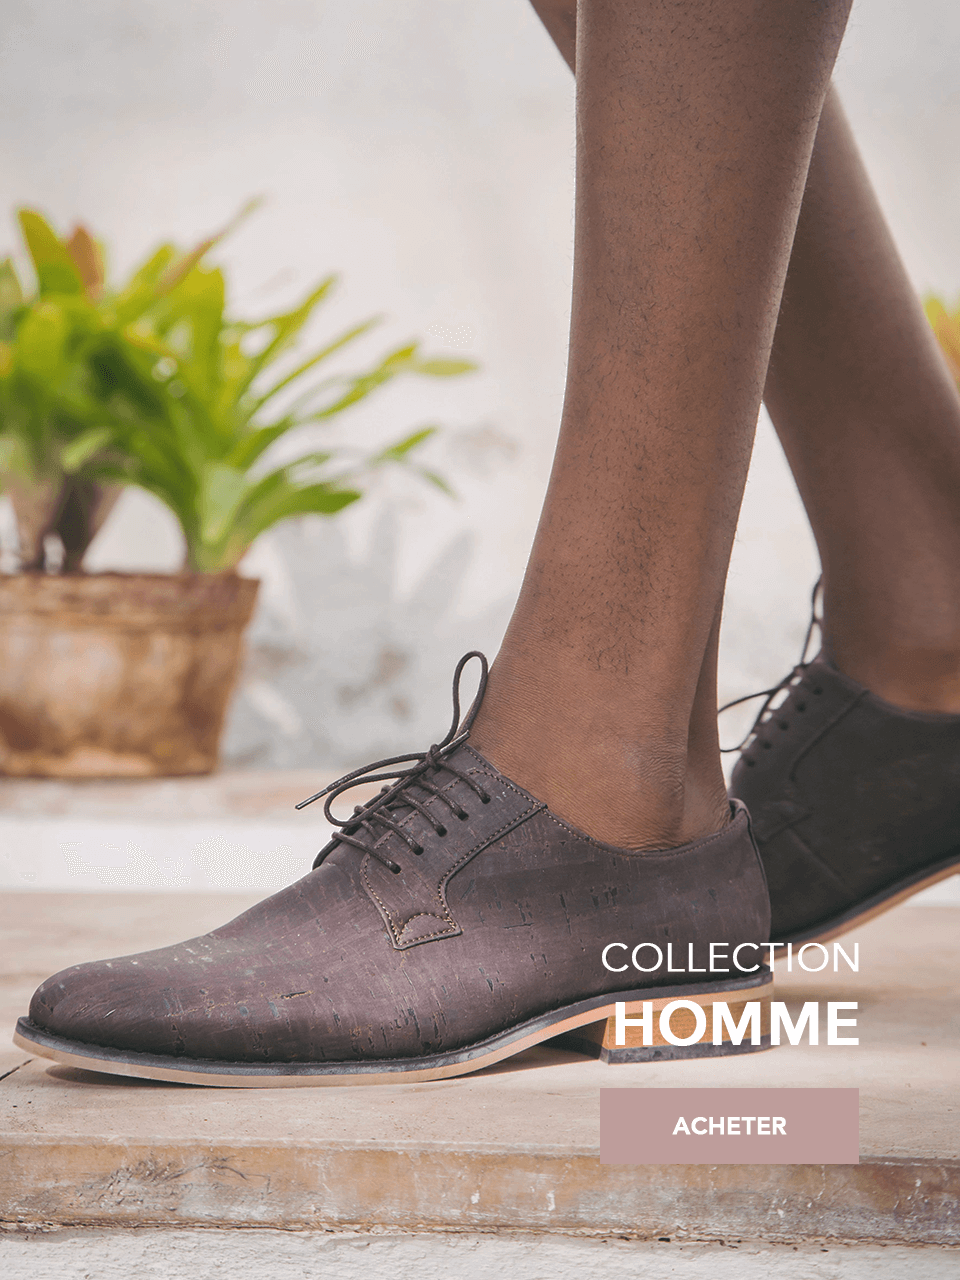 Nouvelle Collection chaussures veganes SS 20 homme vegane schuhe_1